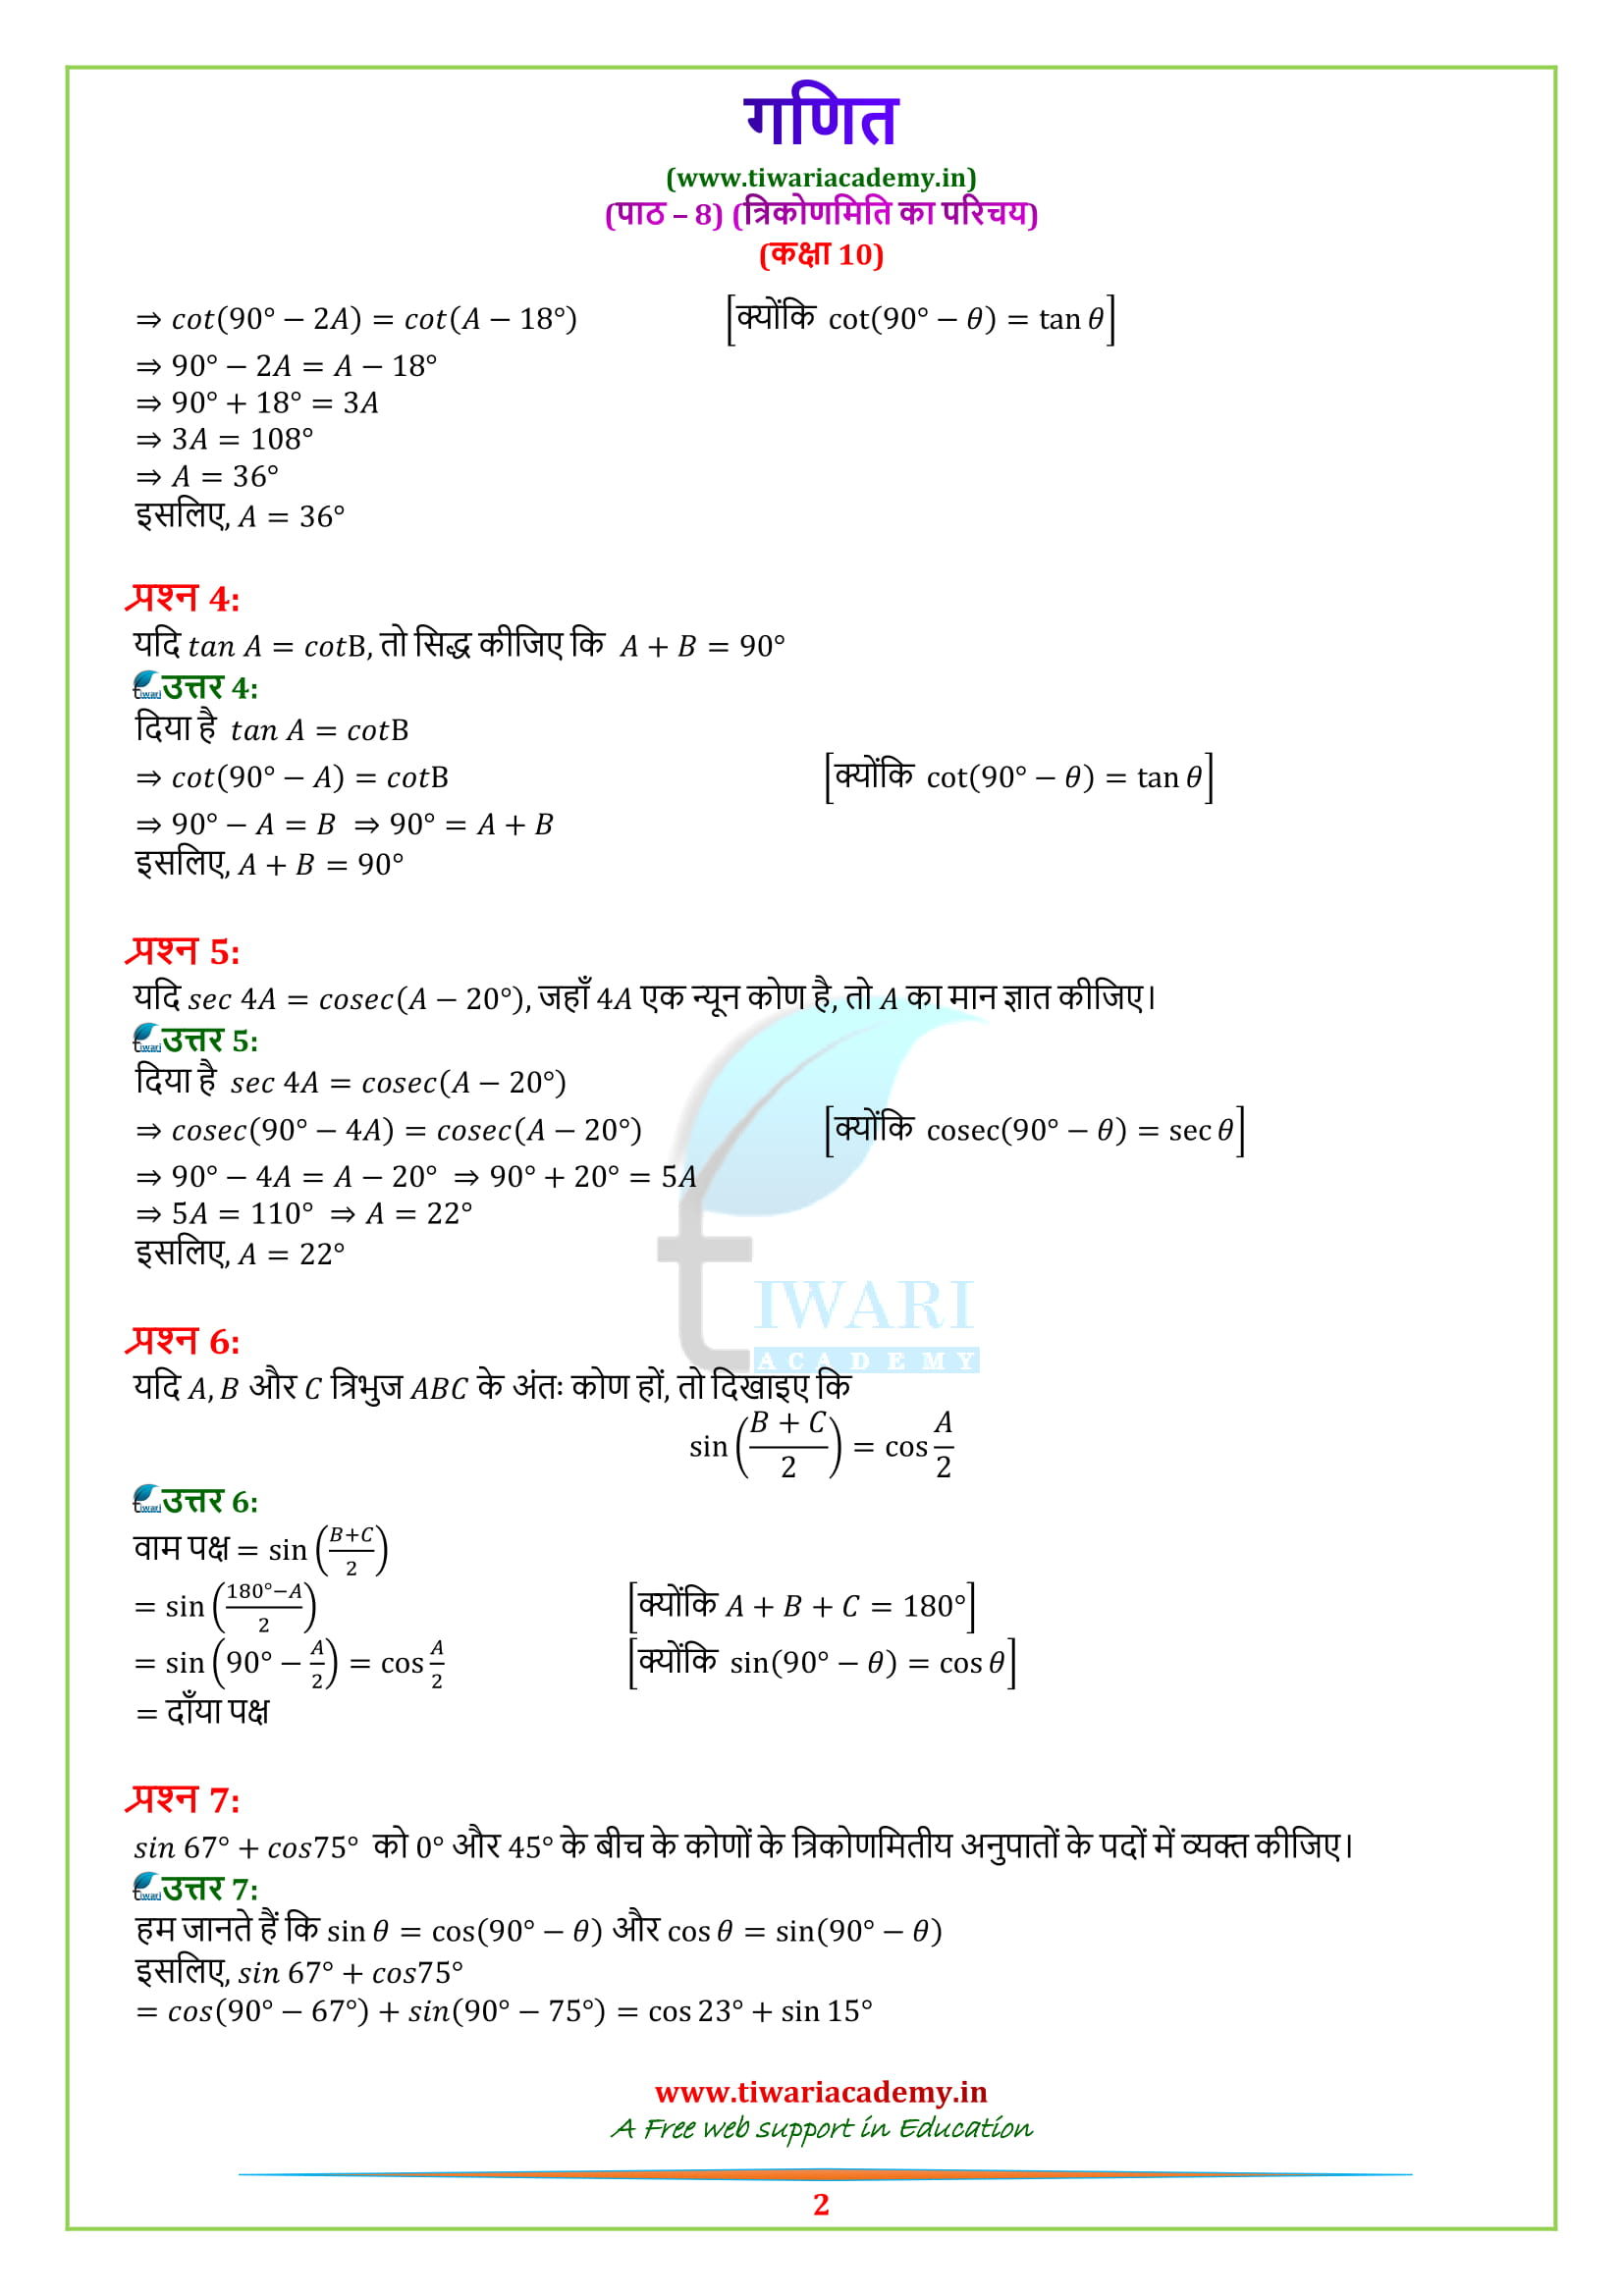 NCERT Solutions for class 10 Maths Chapter 8 Exercise 8.3 all question answers